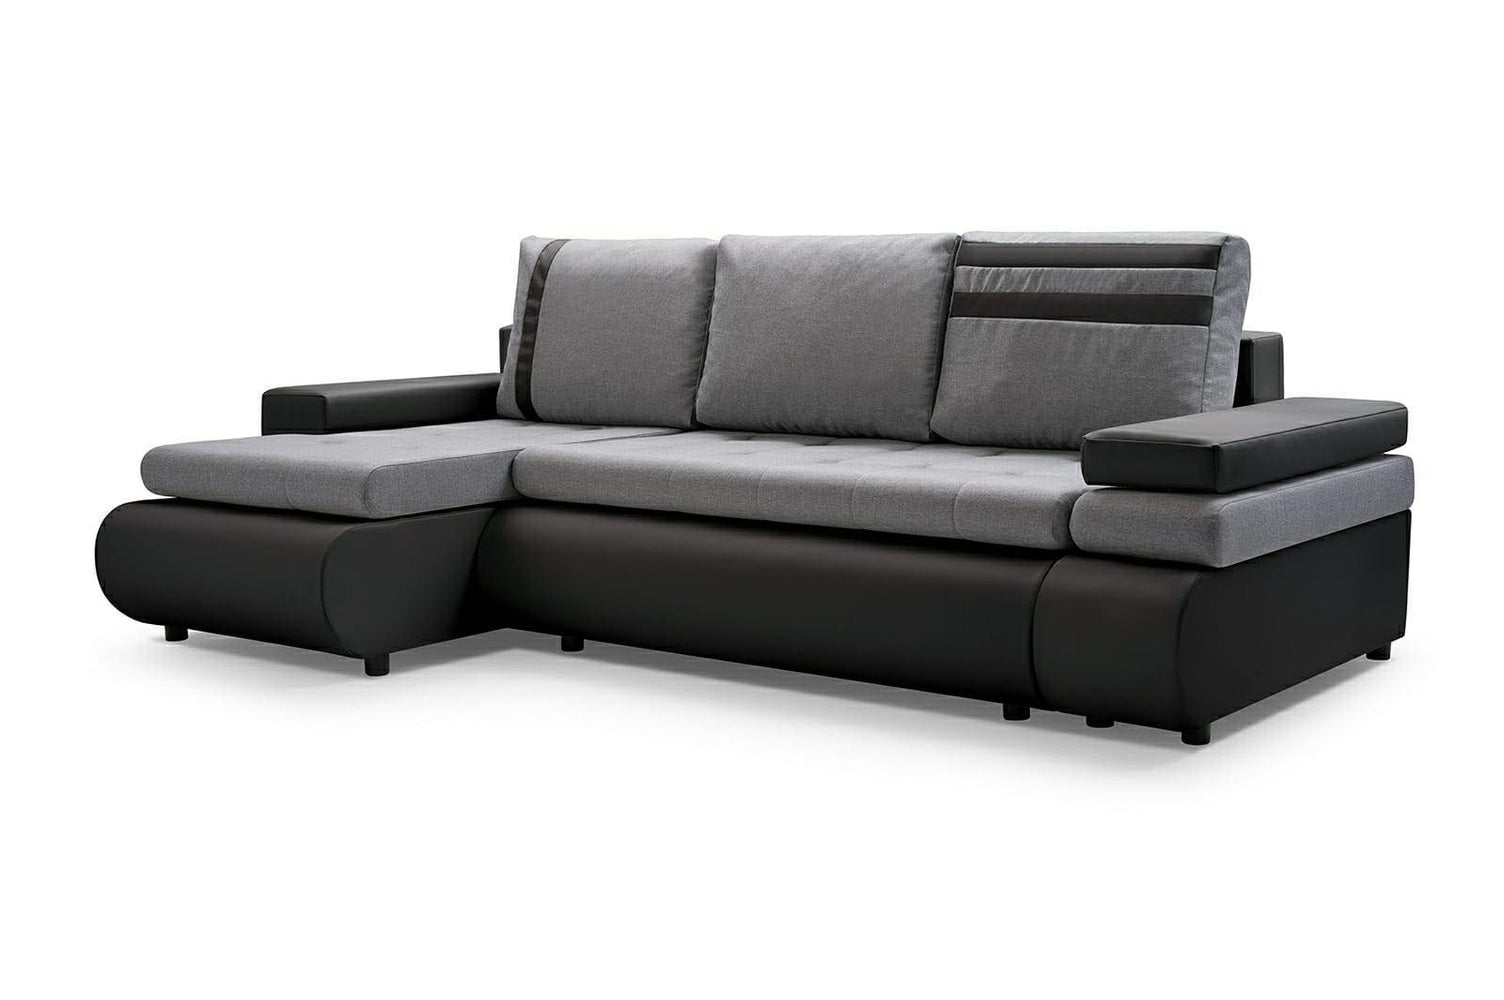 Maxim 2 Corner Sofa Bed With Storage